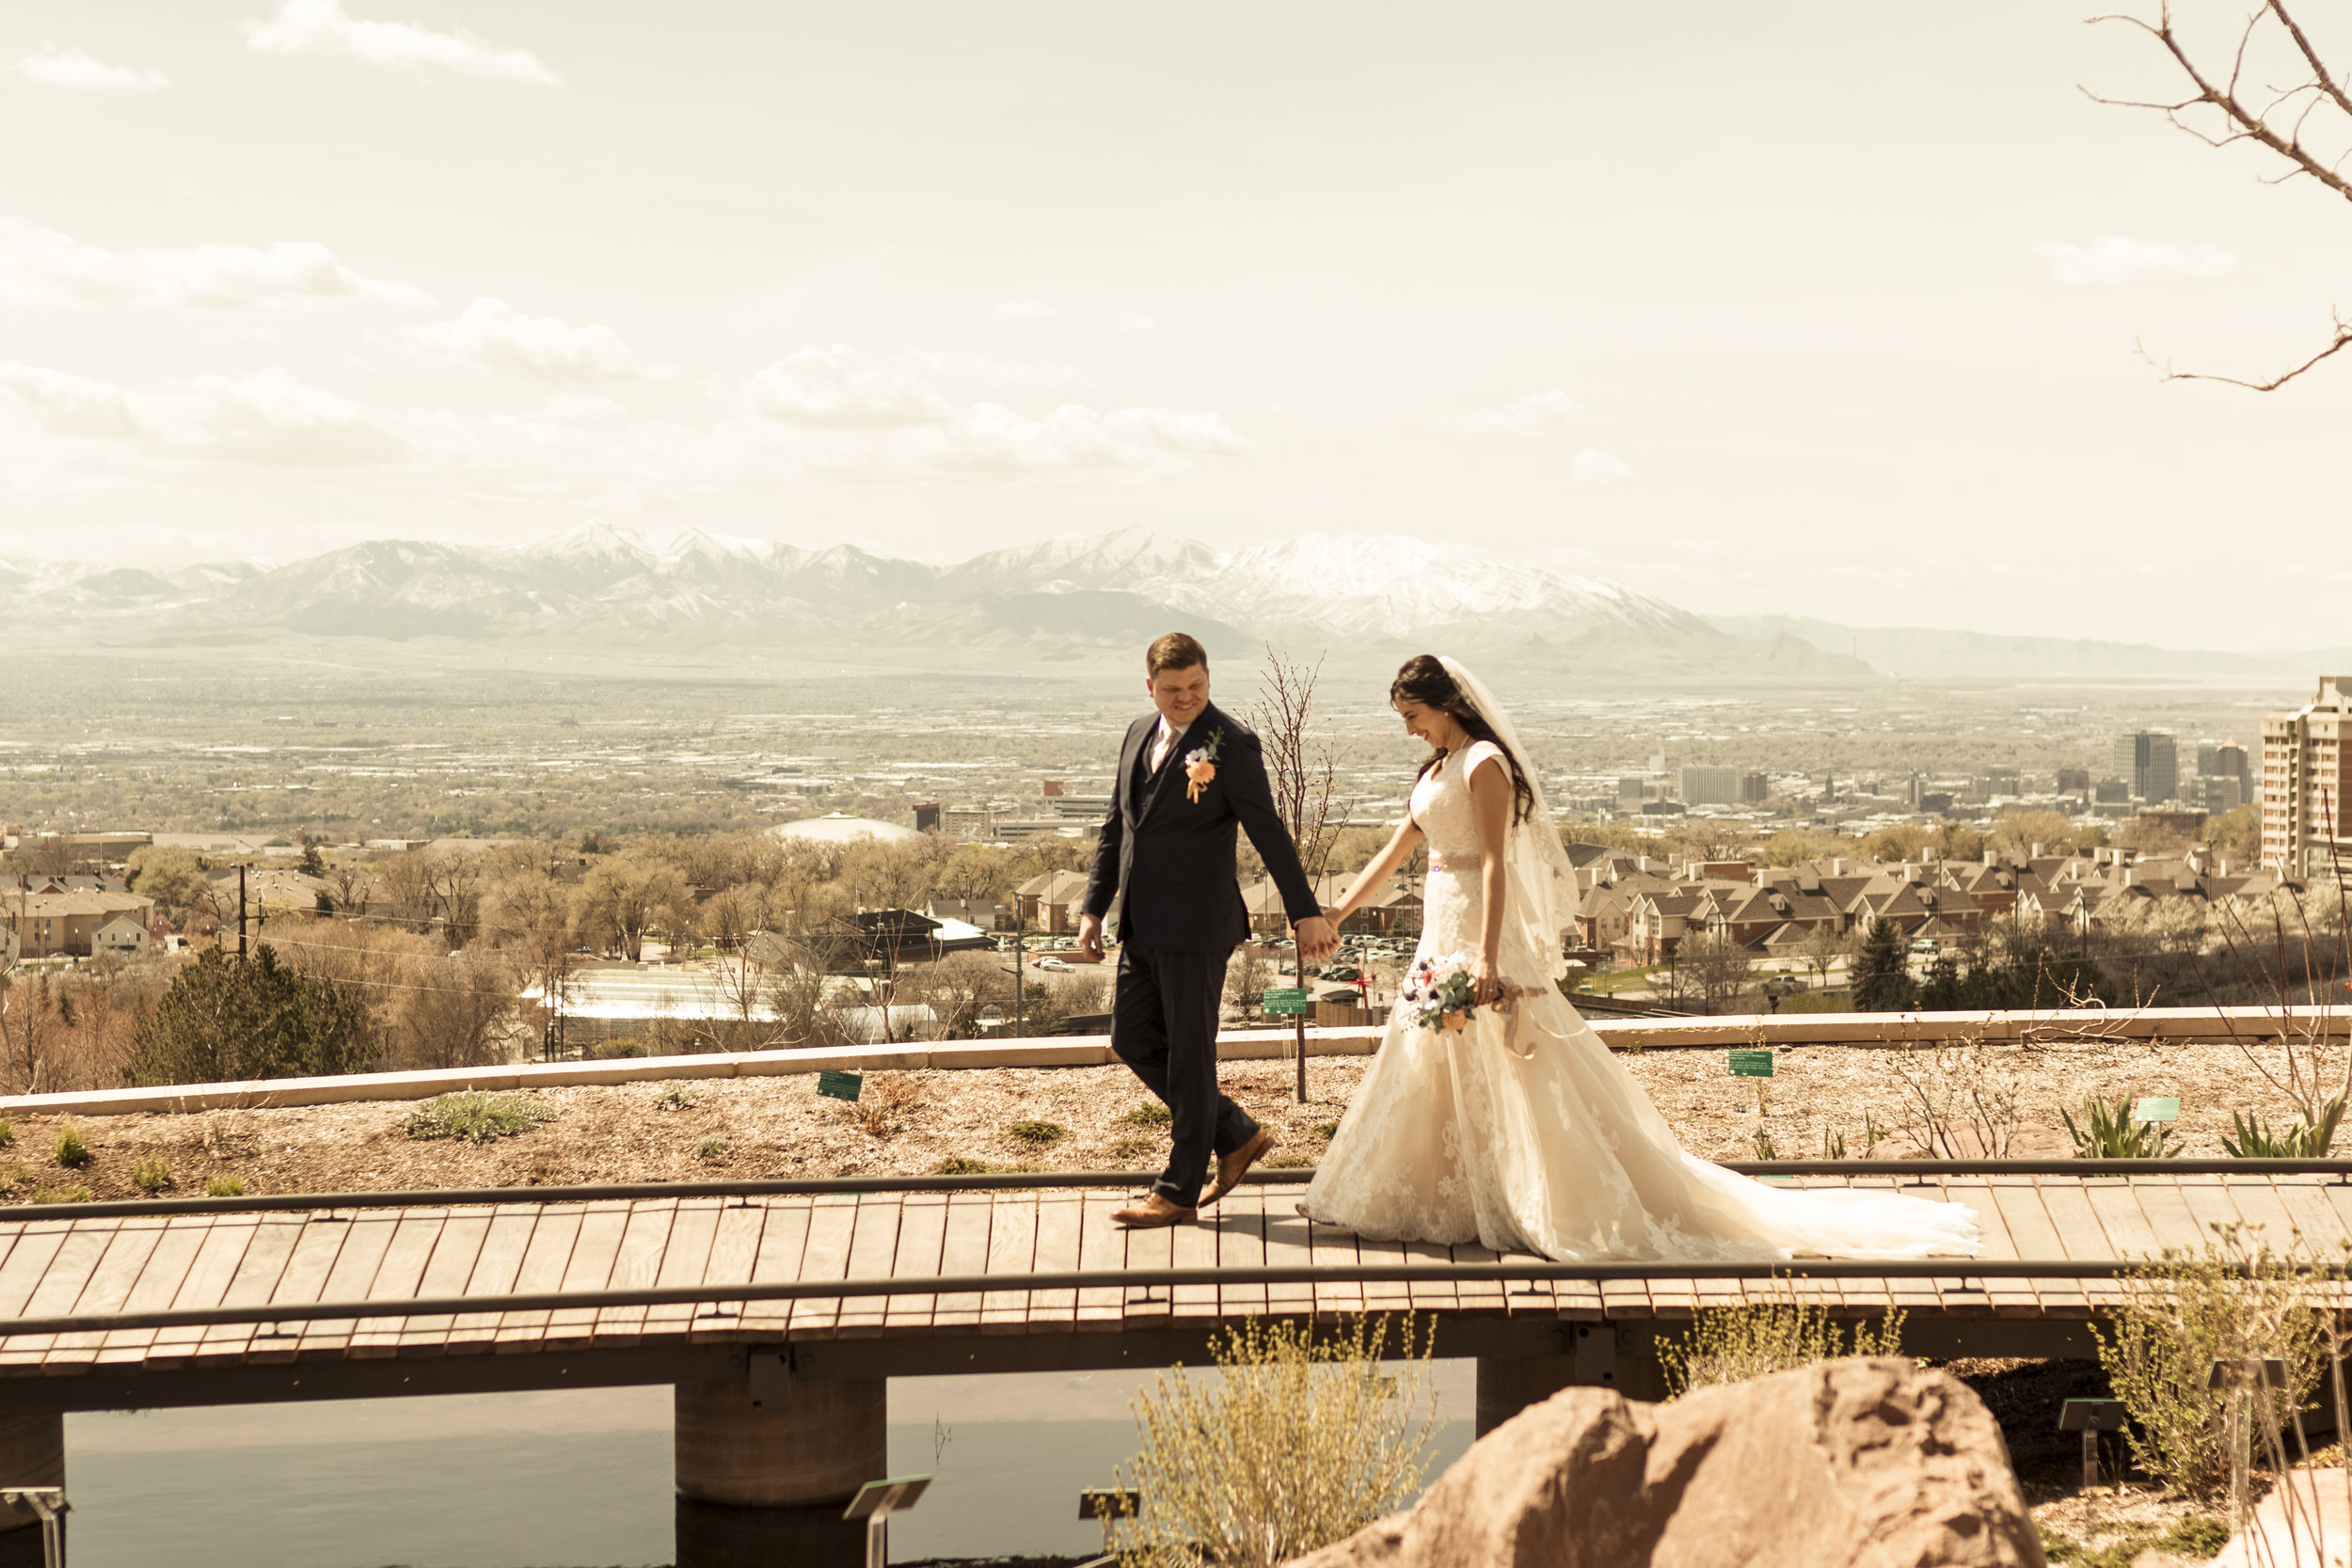 Spring Bridal Session at Red Butte Gardenby Bri Bergman Photography08.JPG